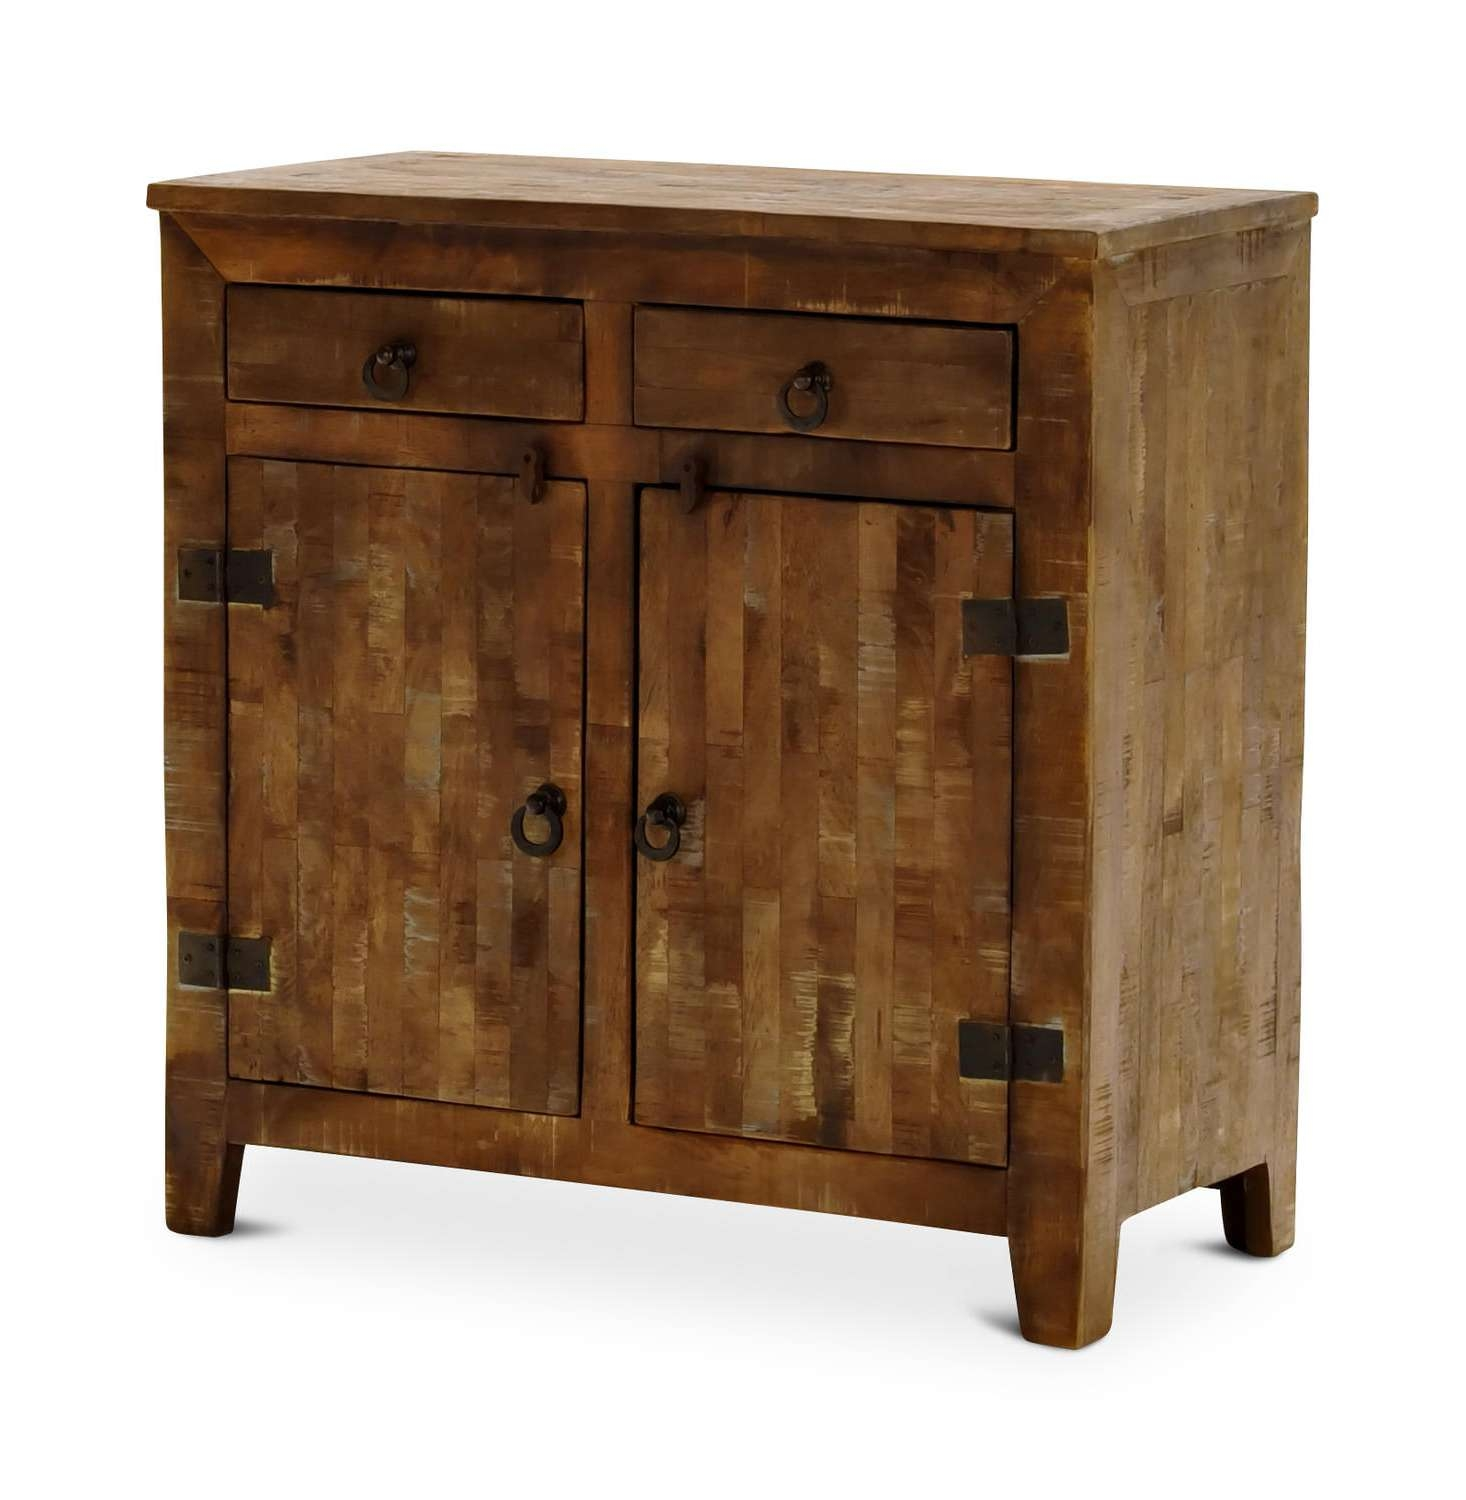 Buffets, China Cabinets And Sideboards – Hom Furniture For Green Sideboards (View 4 of 20)